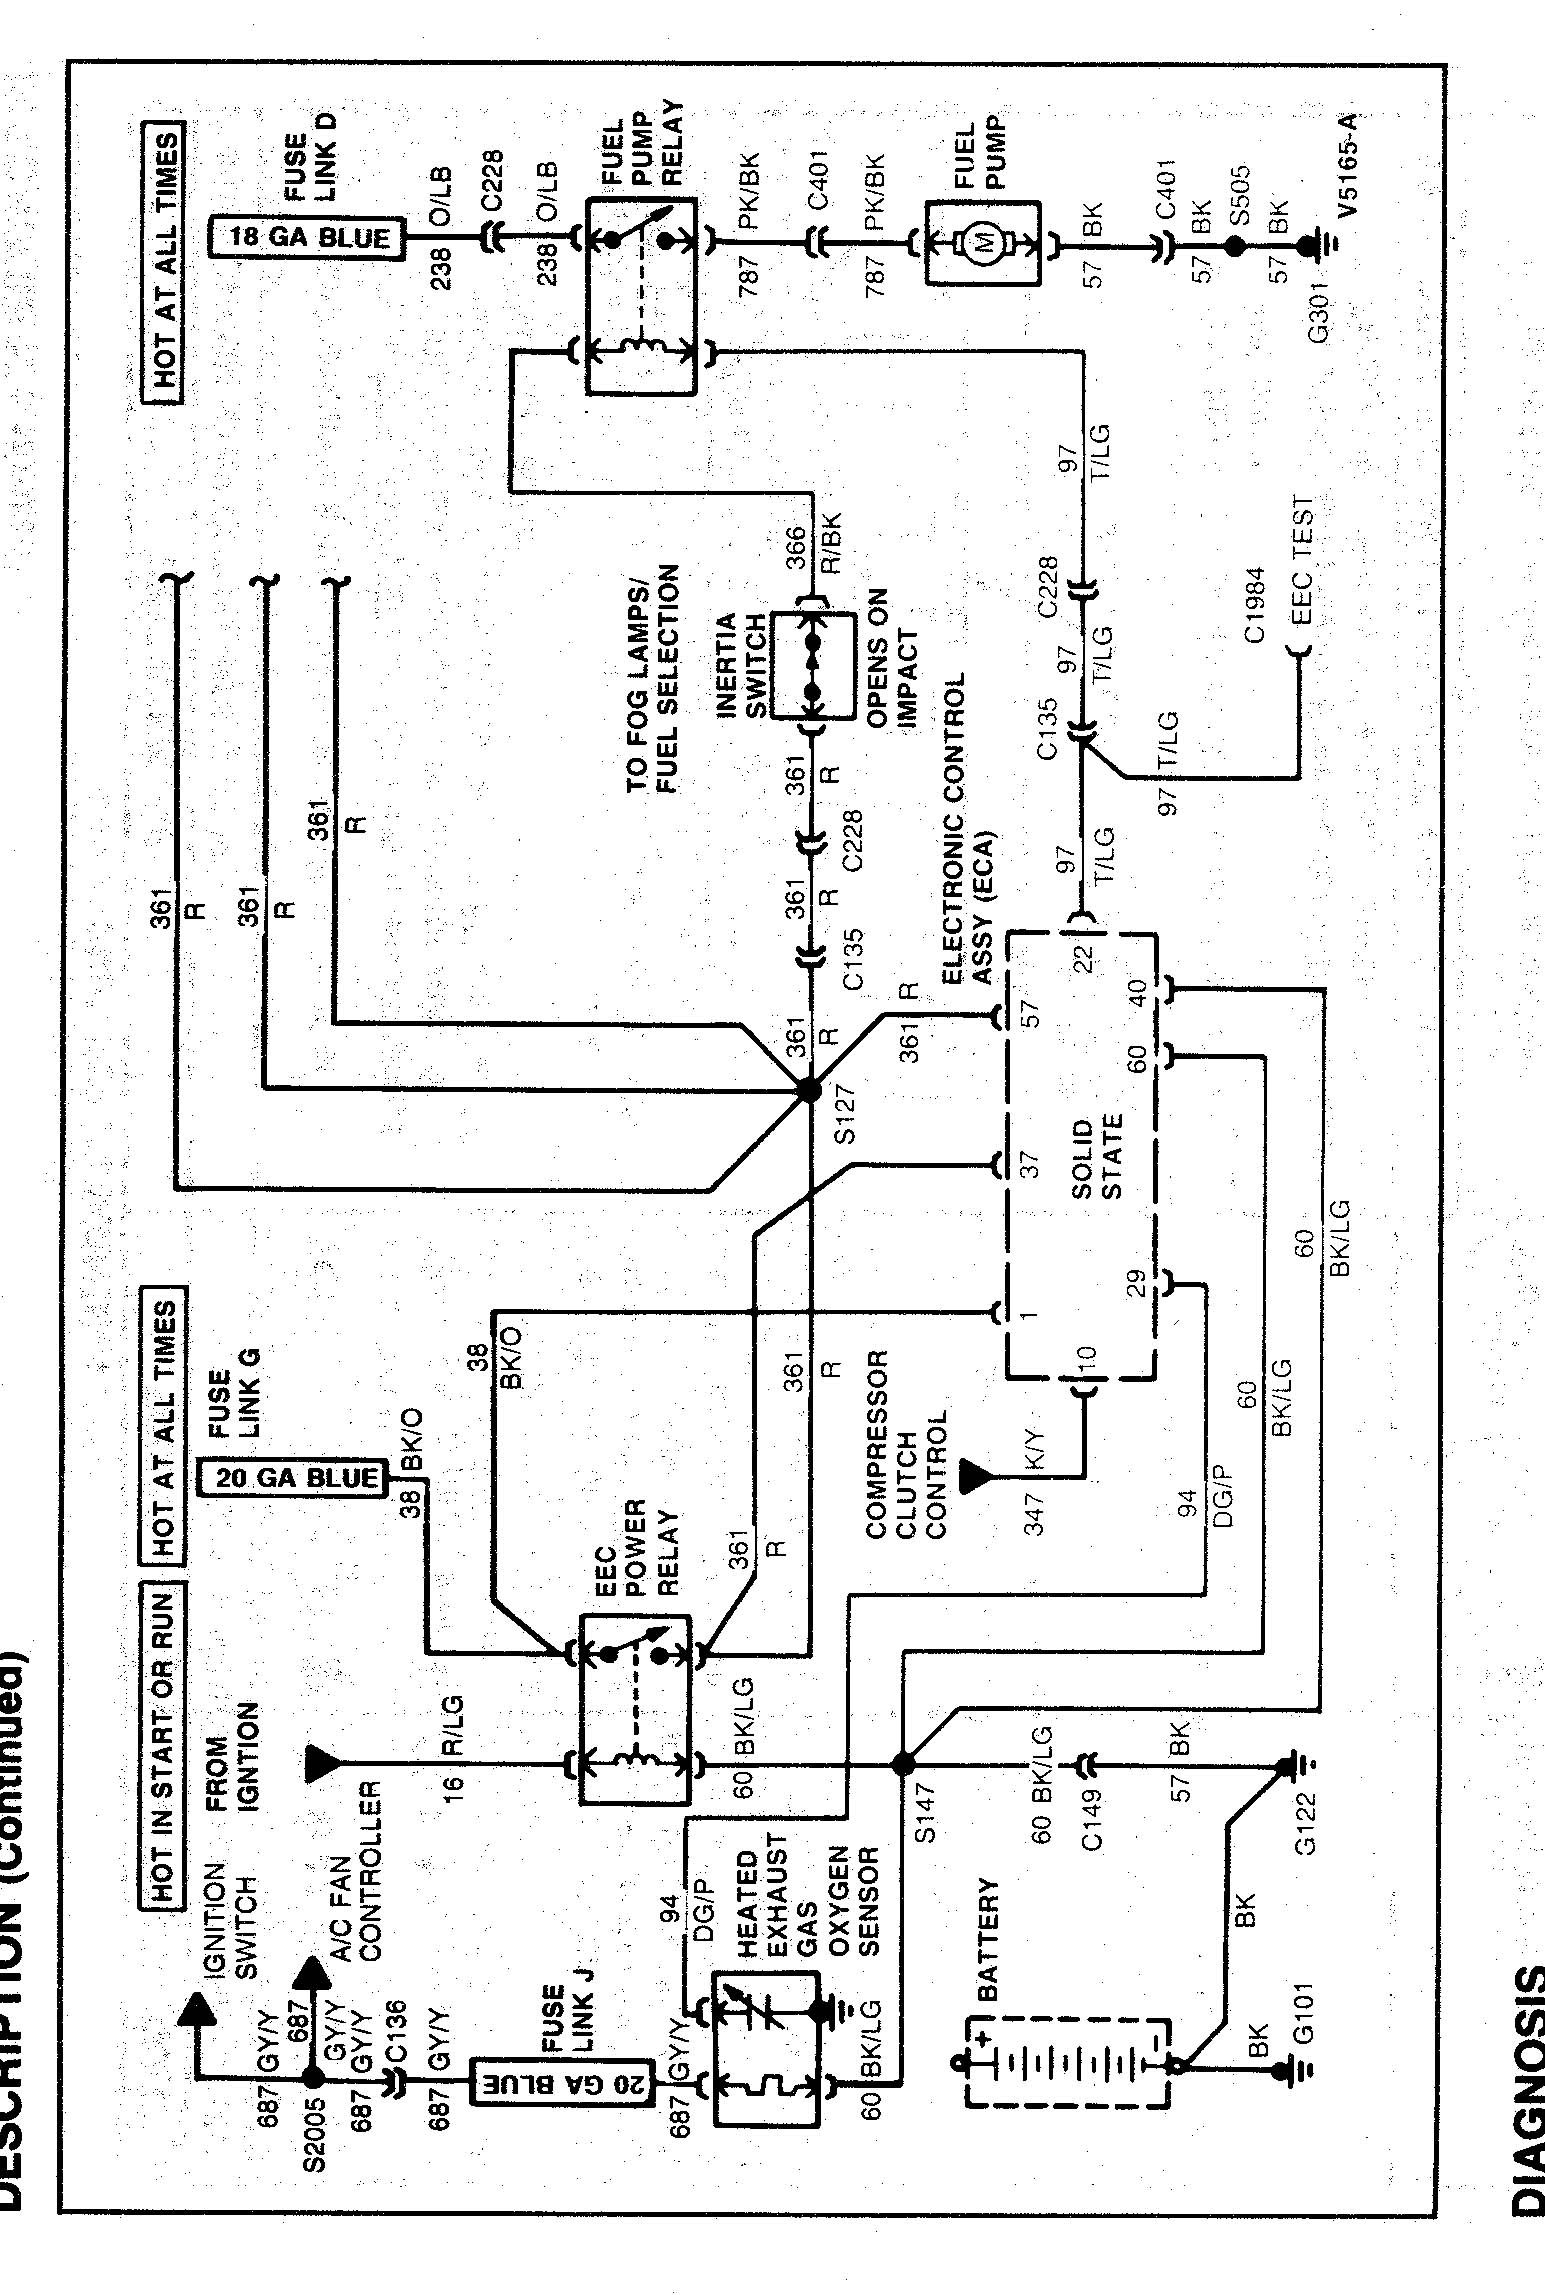 2001 s10 wiring diagram for fuel pump relay